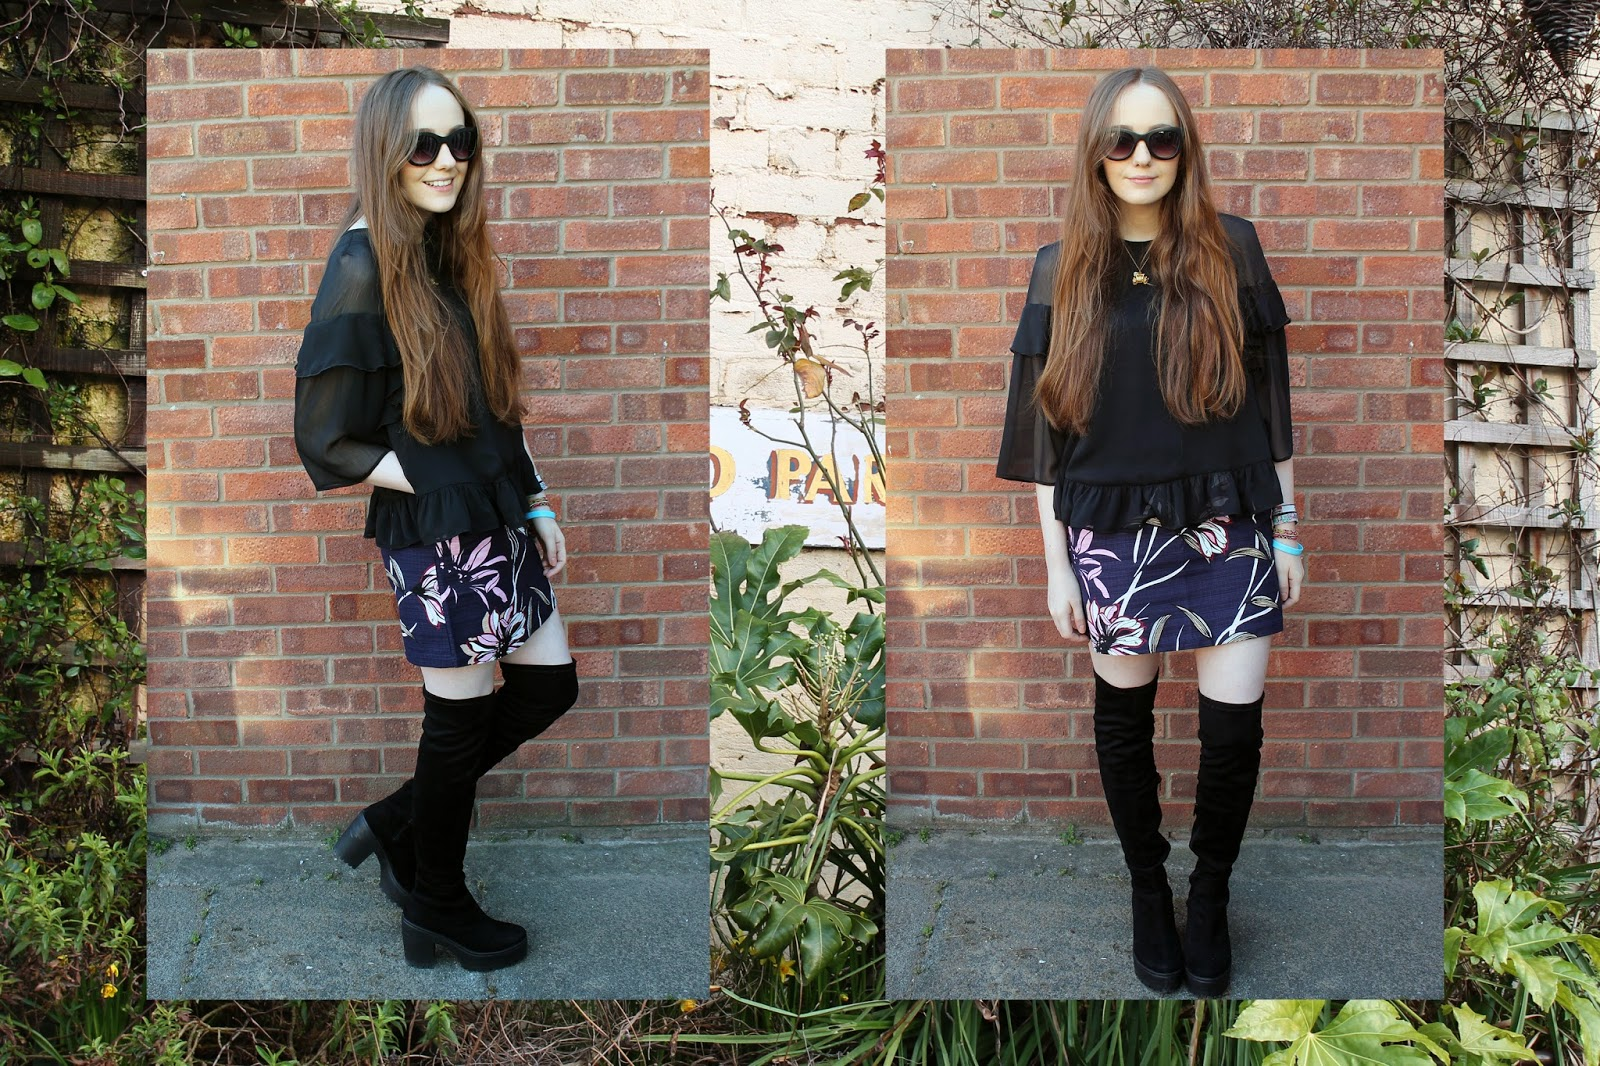 warehouse urban garden party outfit ootd featuring black sheer ruffle blouse, floral a line skirt and suede over the knee boots